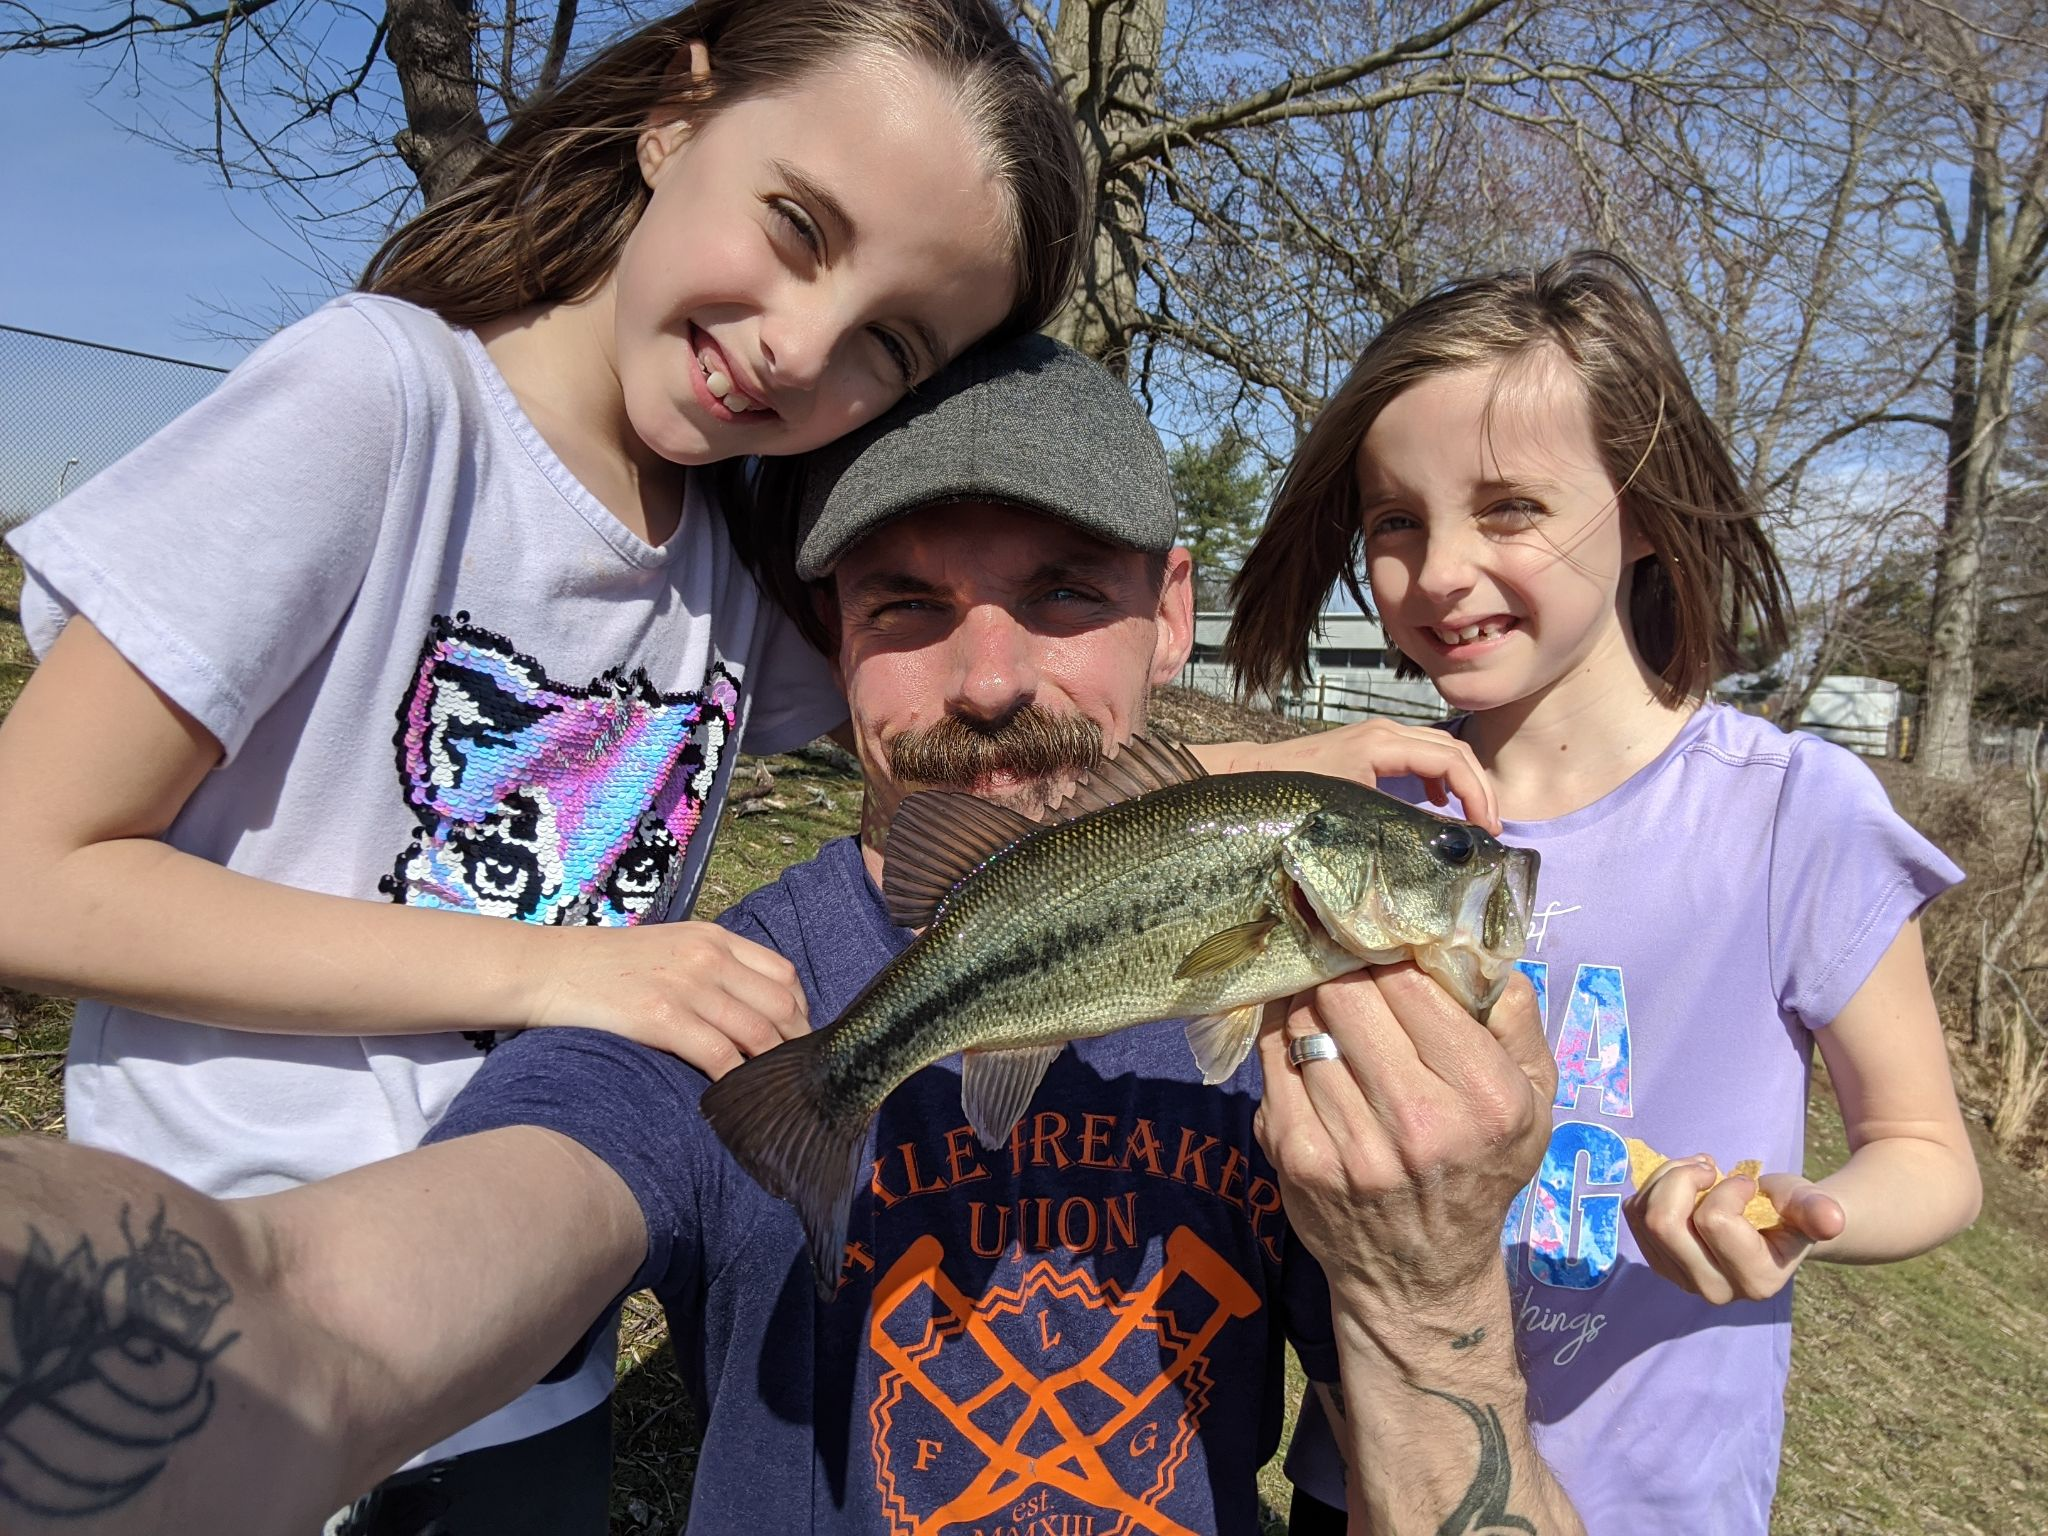 Man and two little girls. He is holding a fish.